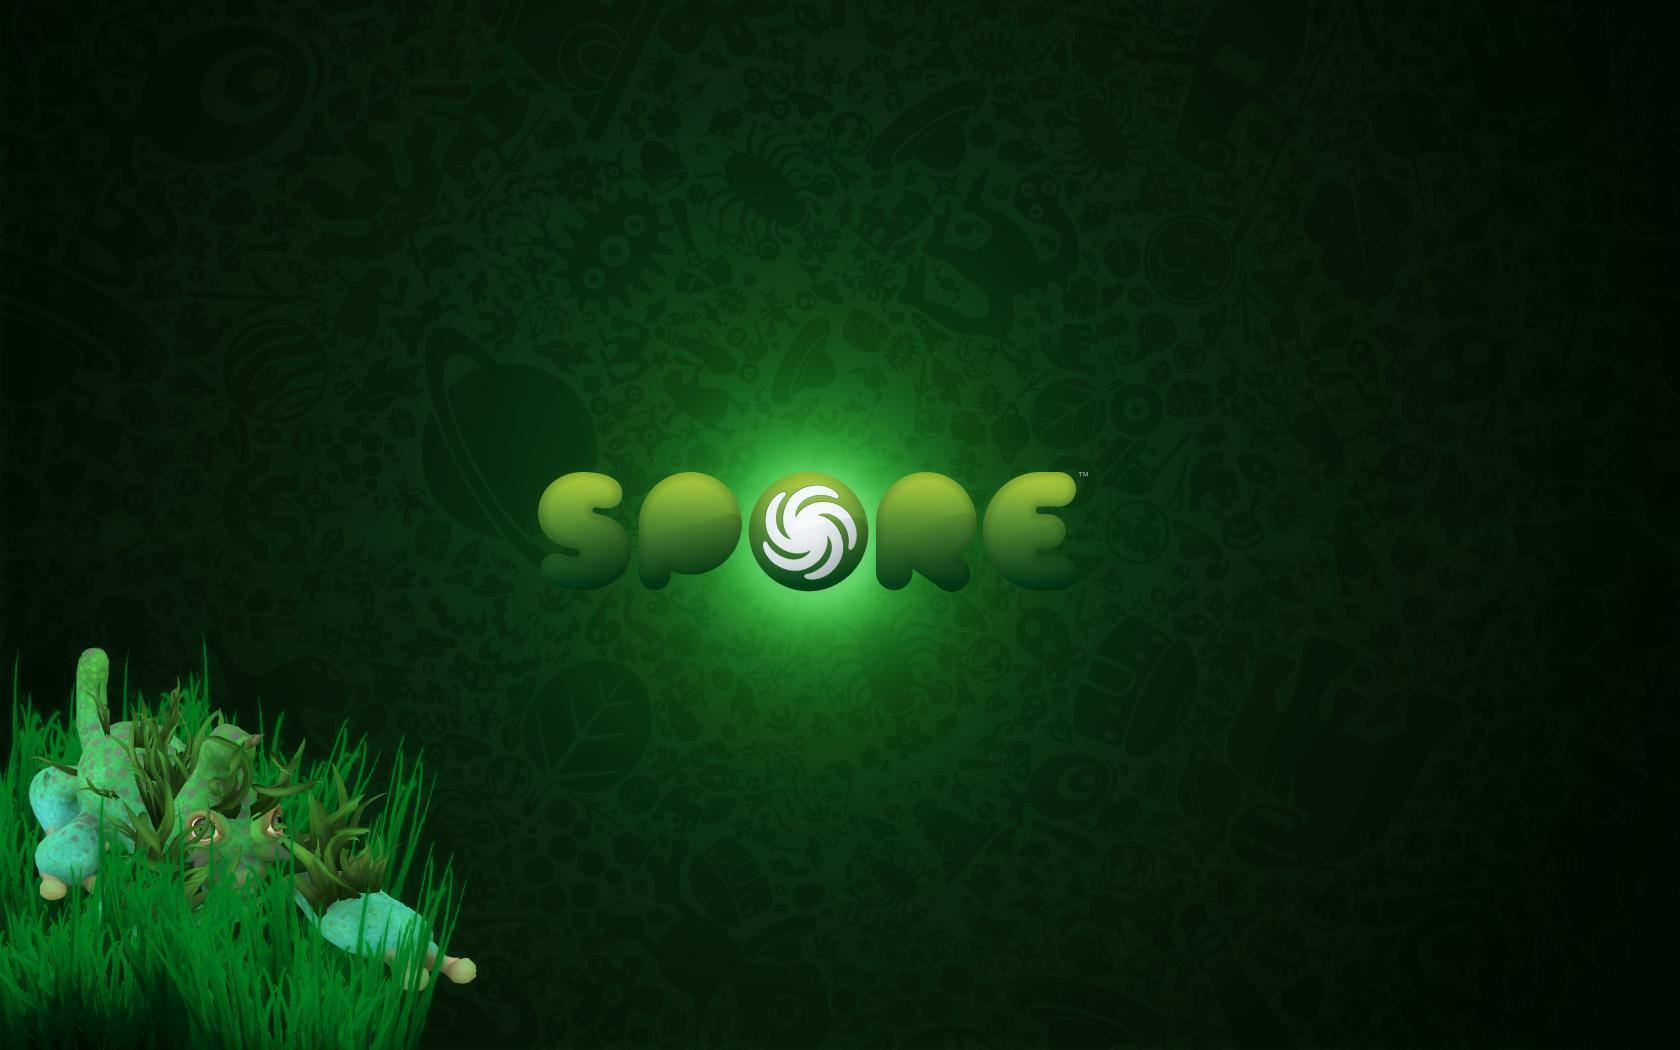 Spore Wallpapers 1680x1050